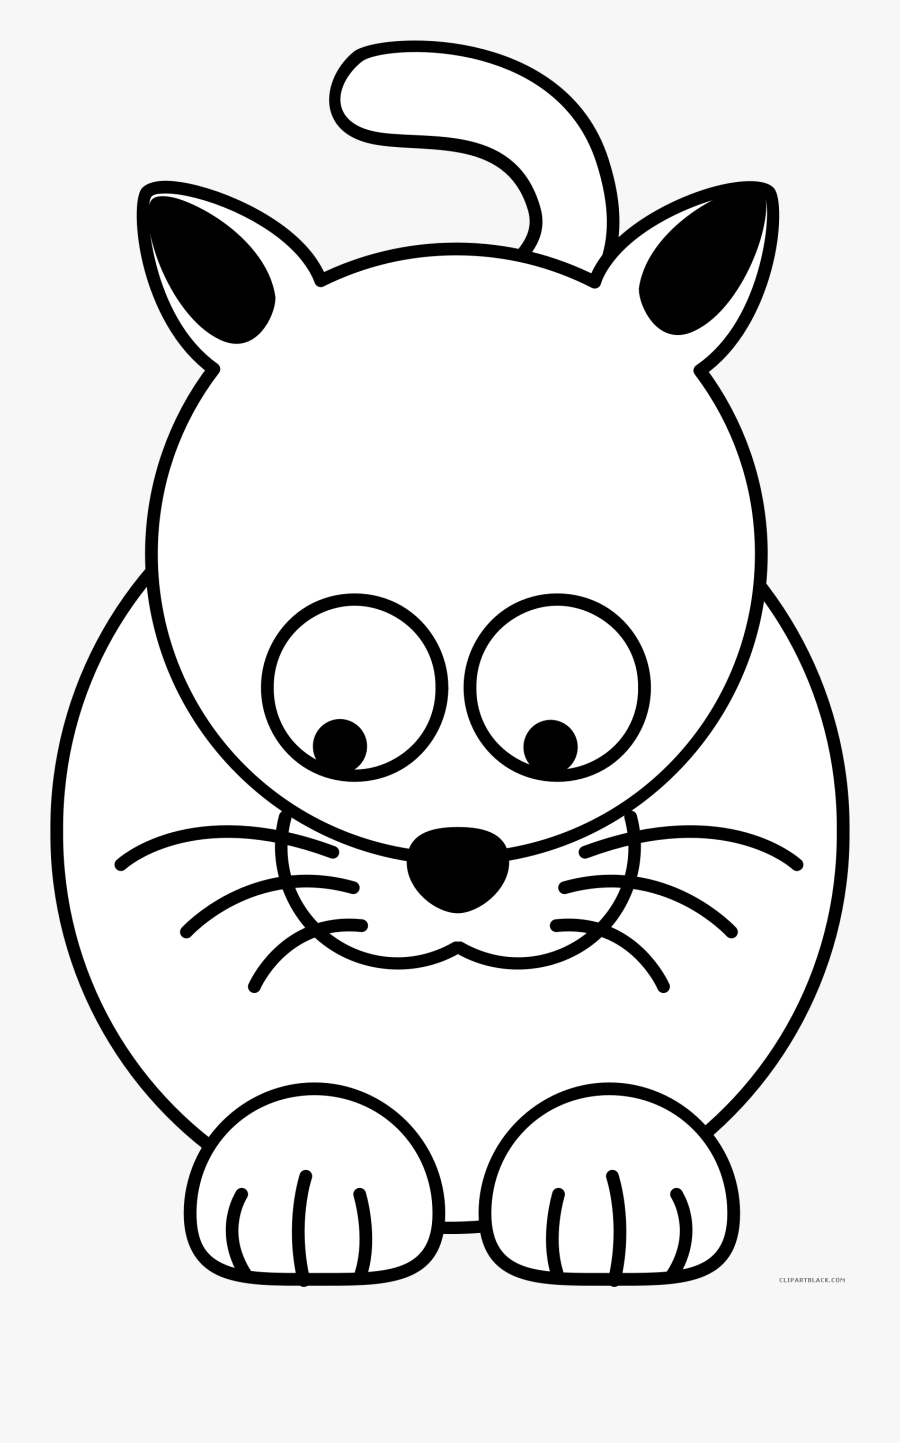 Kitty Cat Animal Free Black White Clipart Images Clipartblack - Kids Can Draw, Transparent Clipart